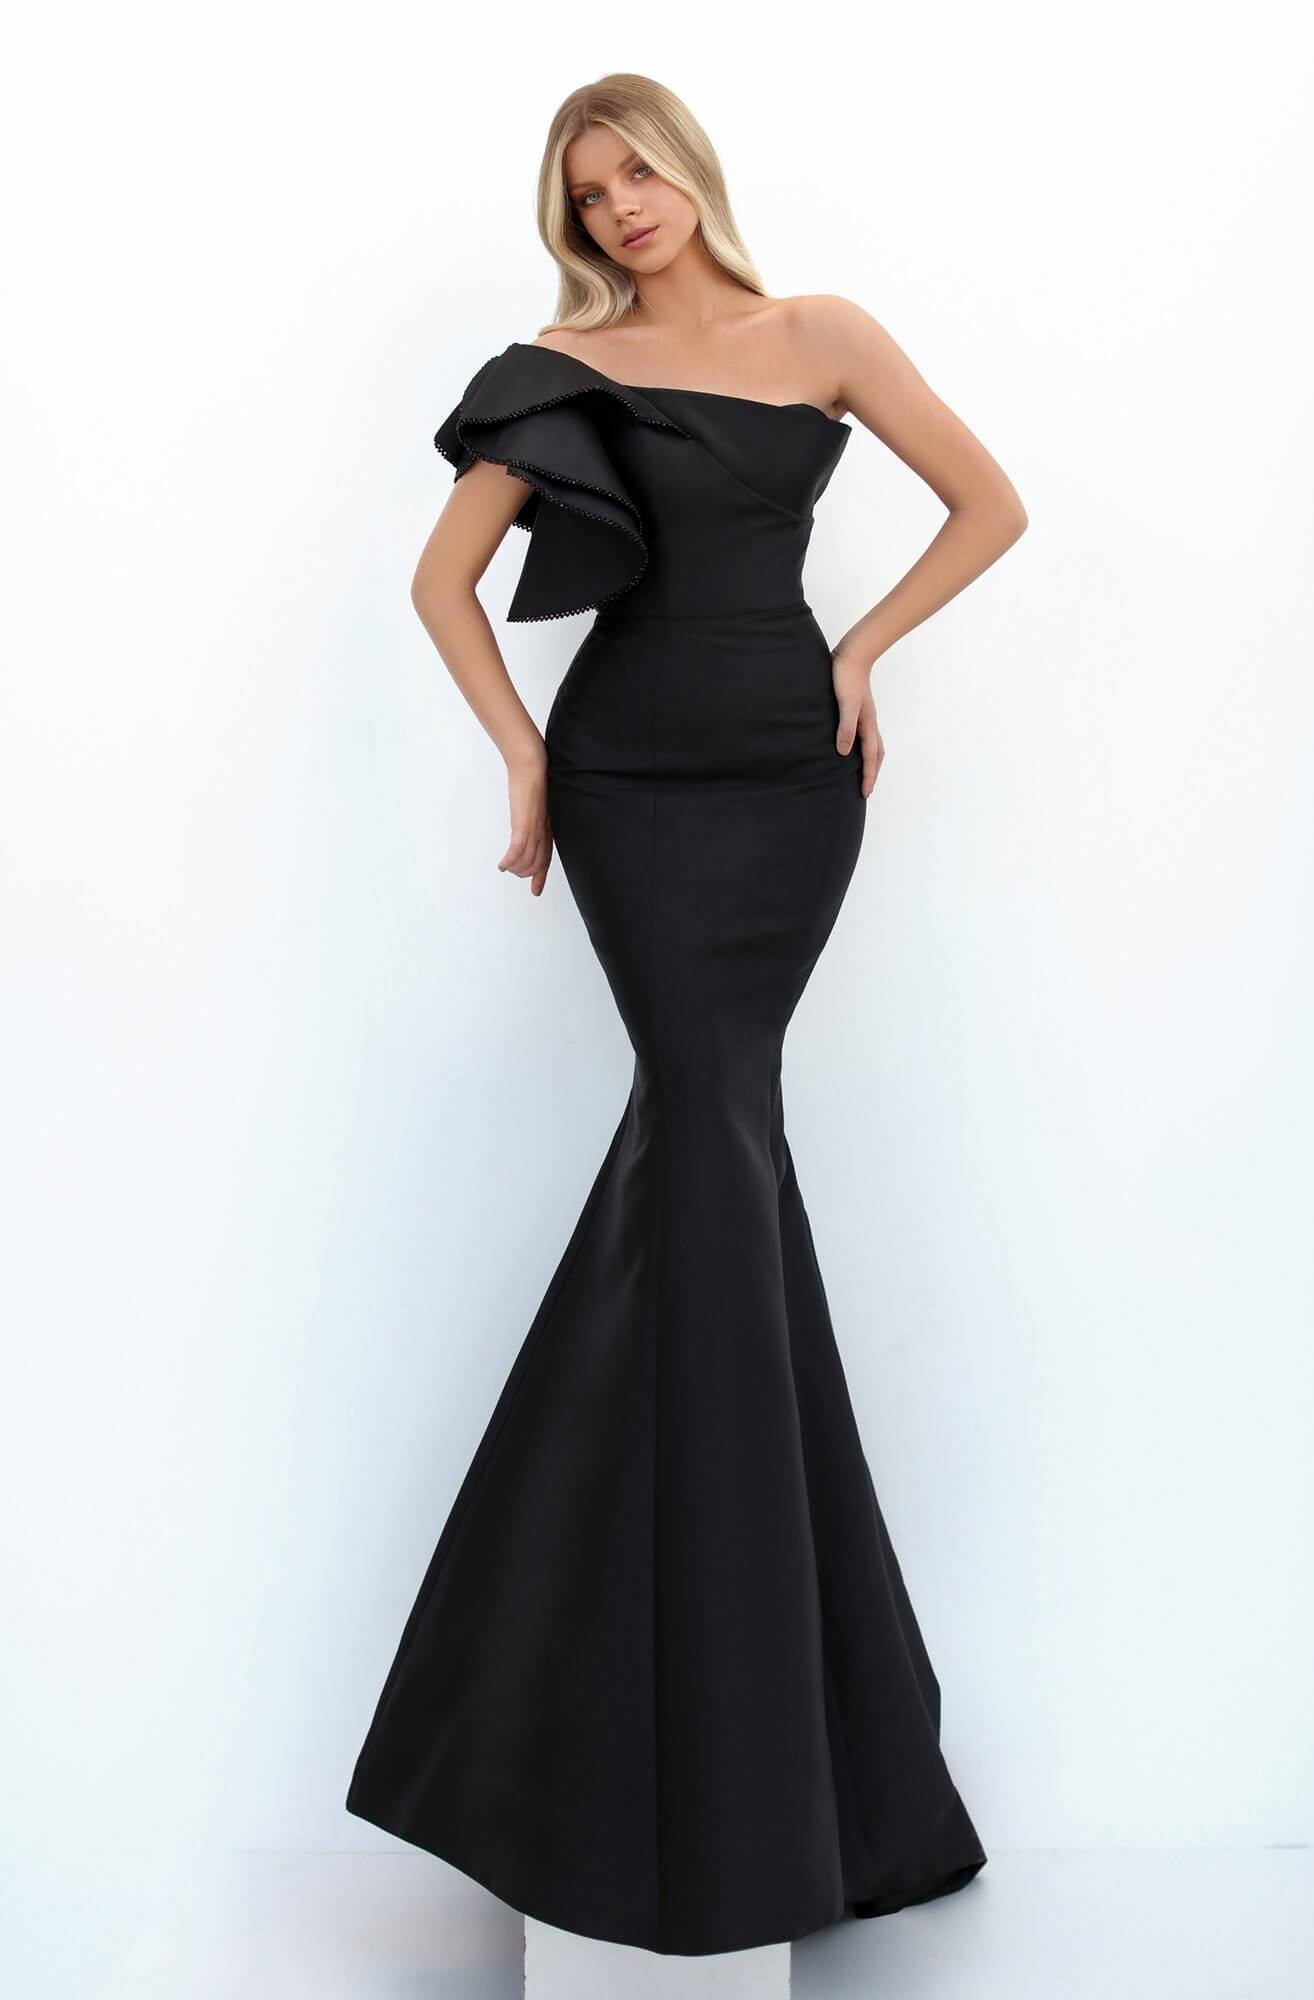 Tarik Ediz - Ruffled Asymmetric Mermaid Evening Dress 50731 In Black